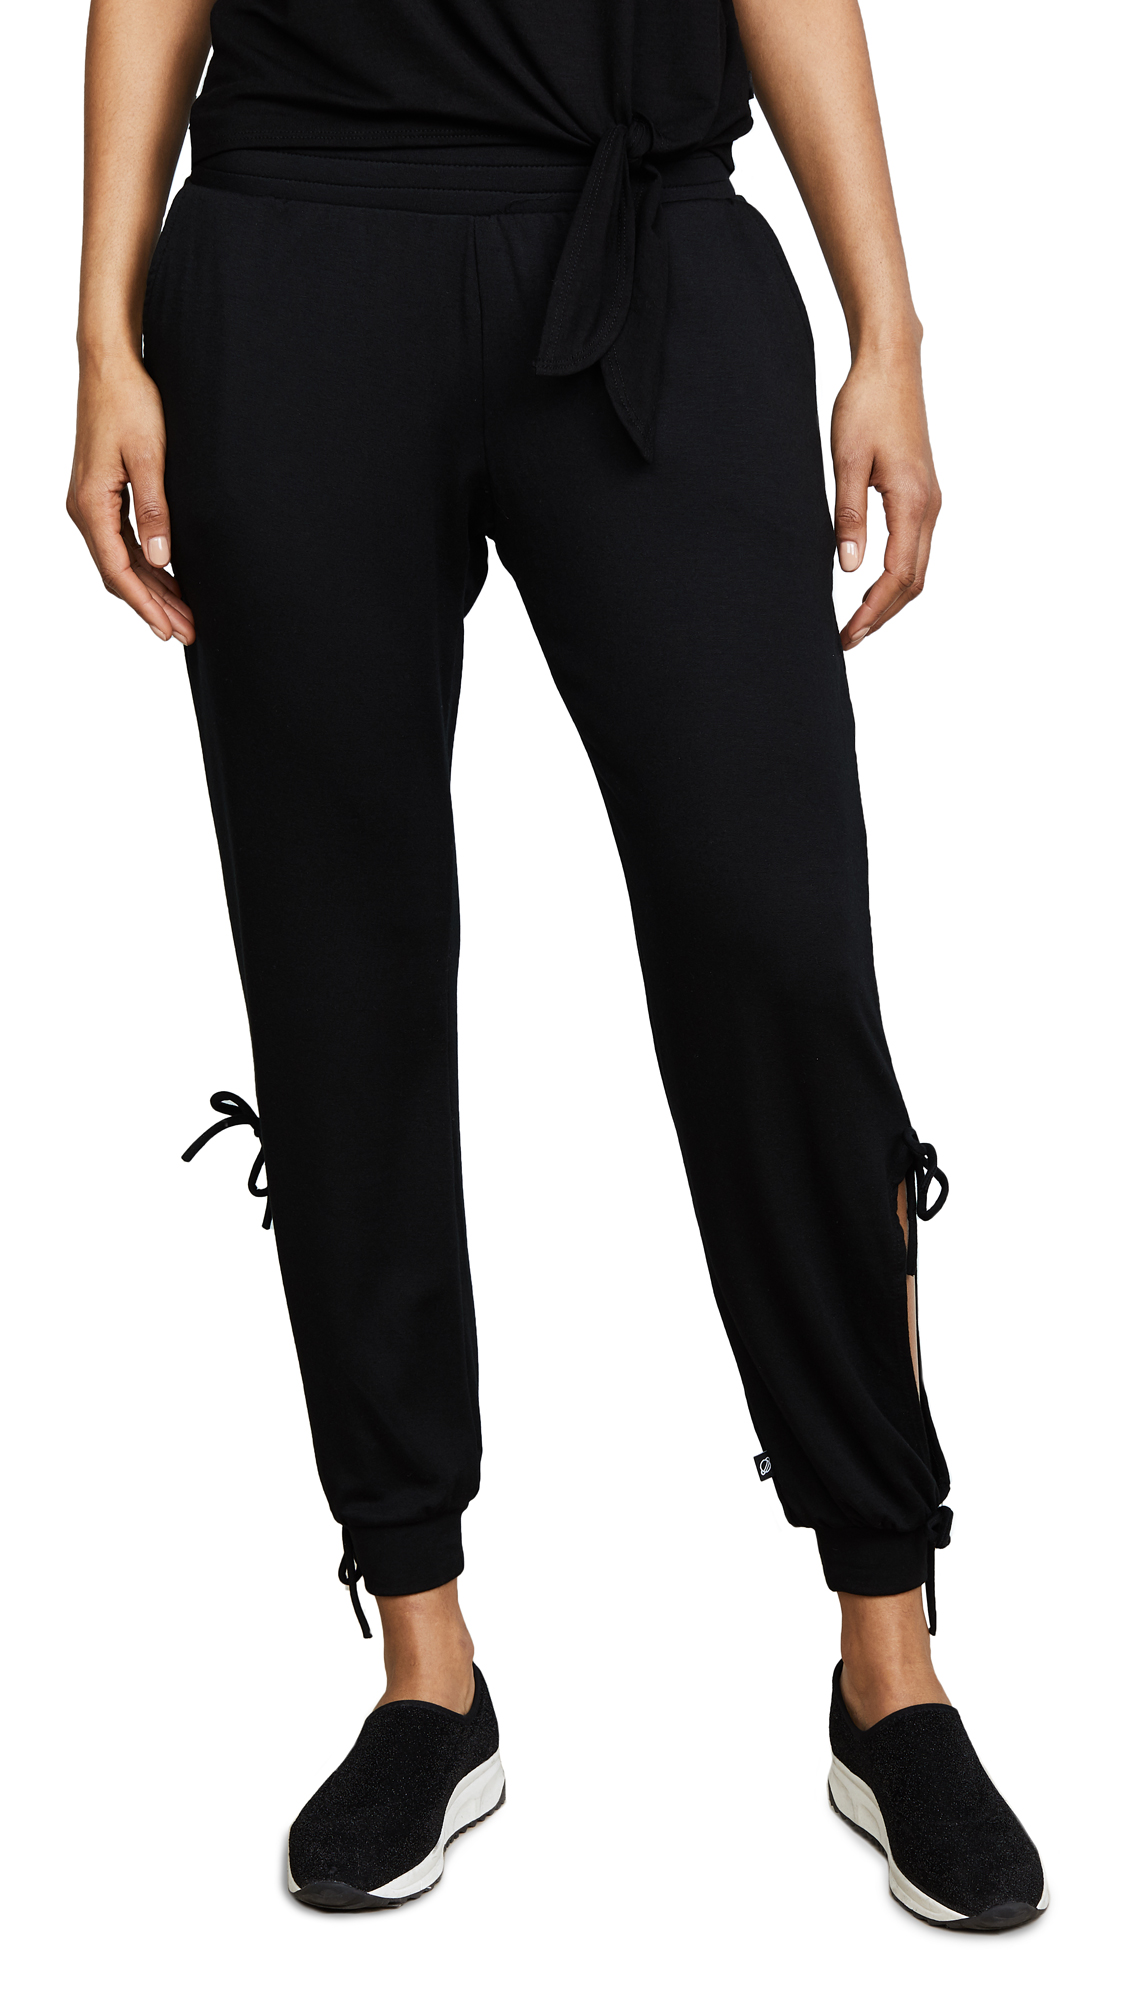 Black Open Tie Side Sweatpants